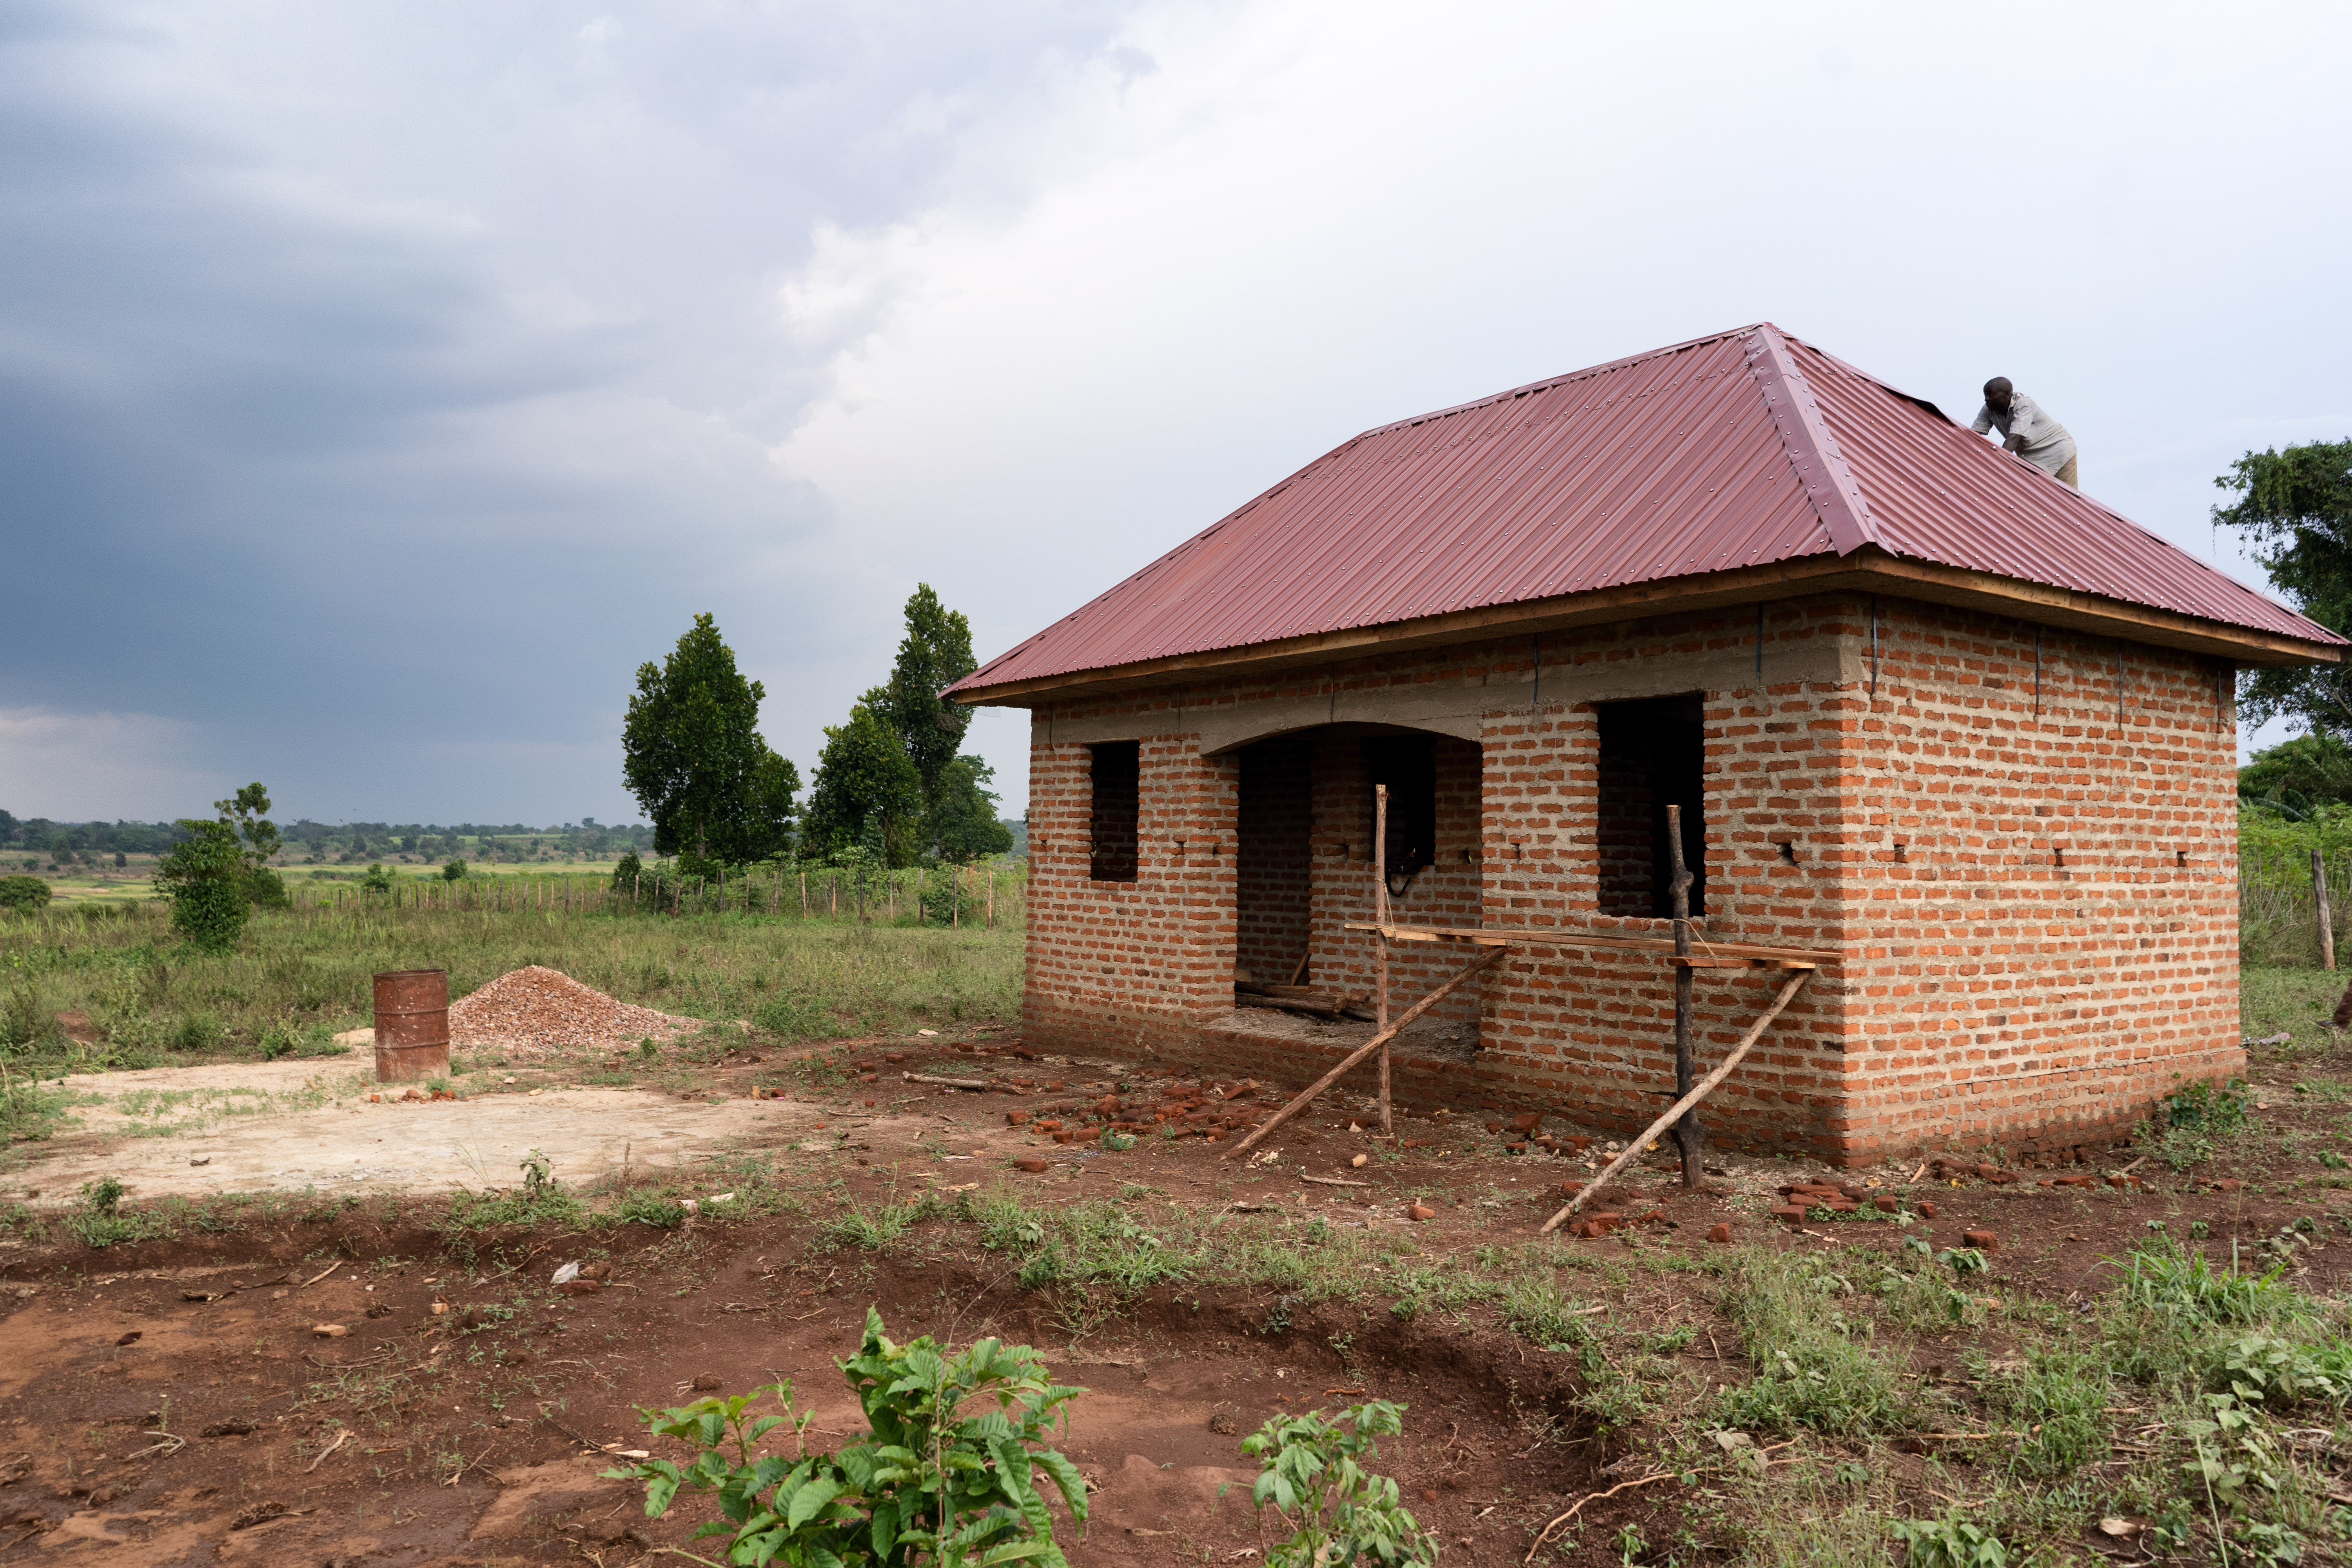 A brick house being built